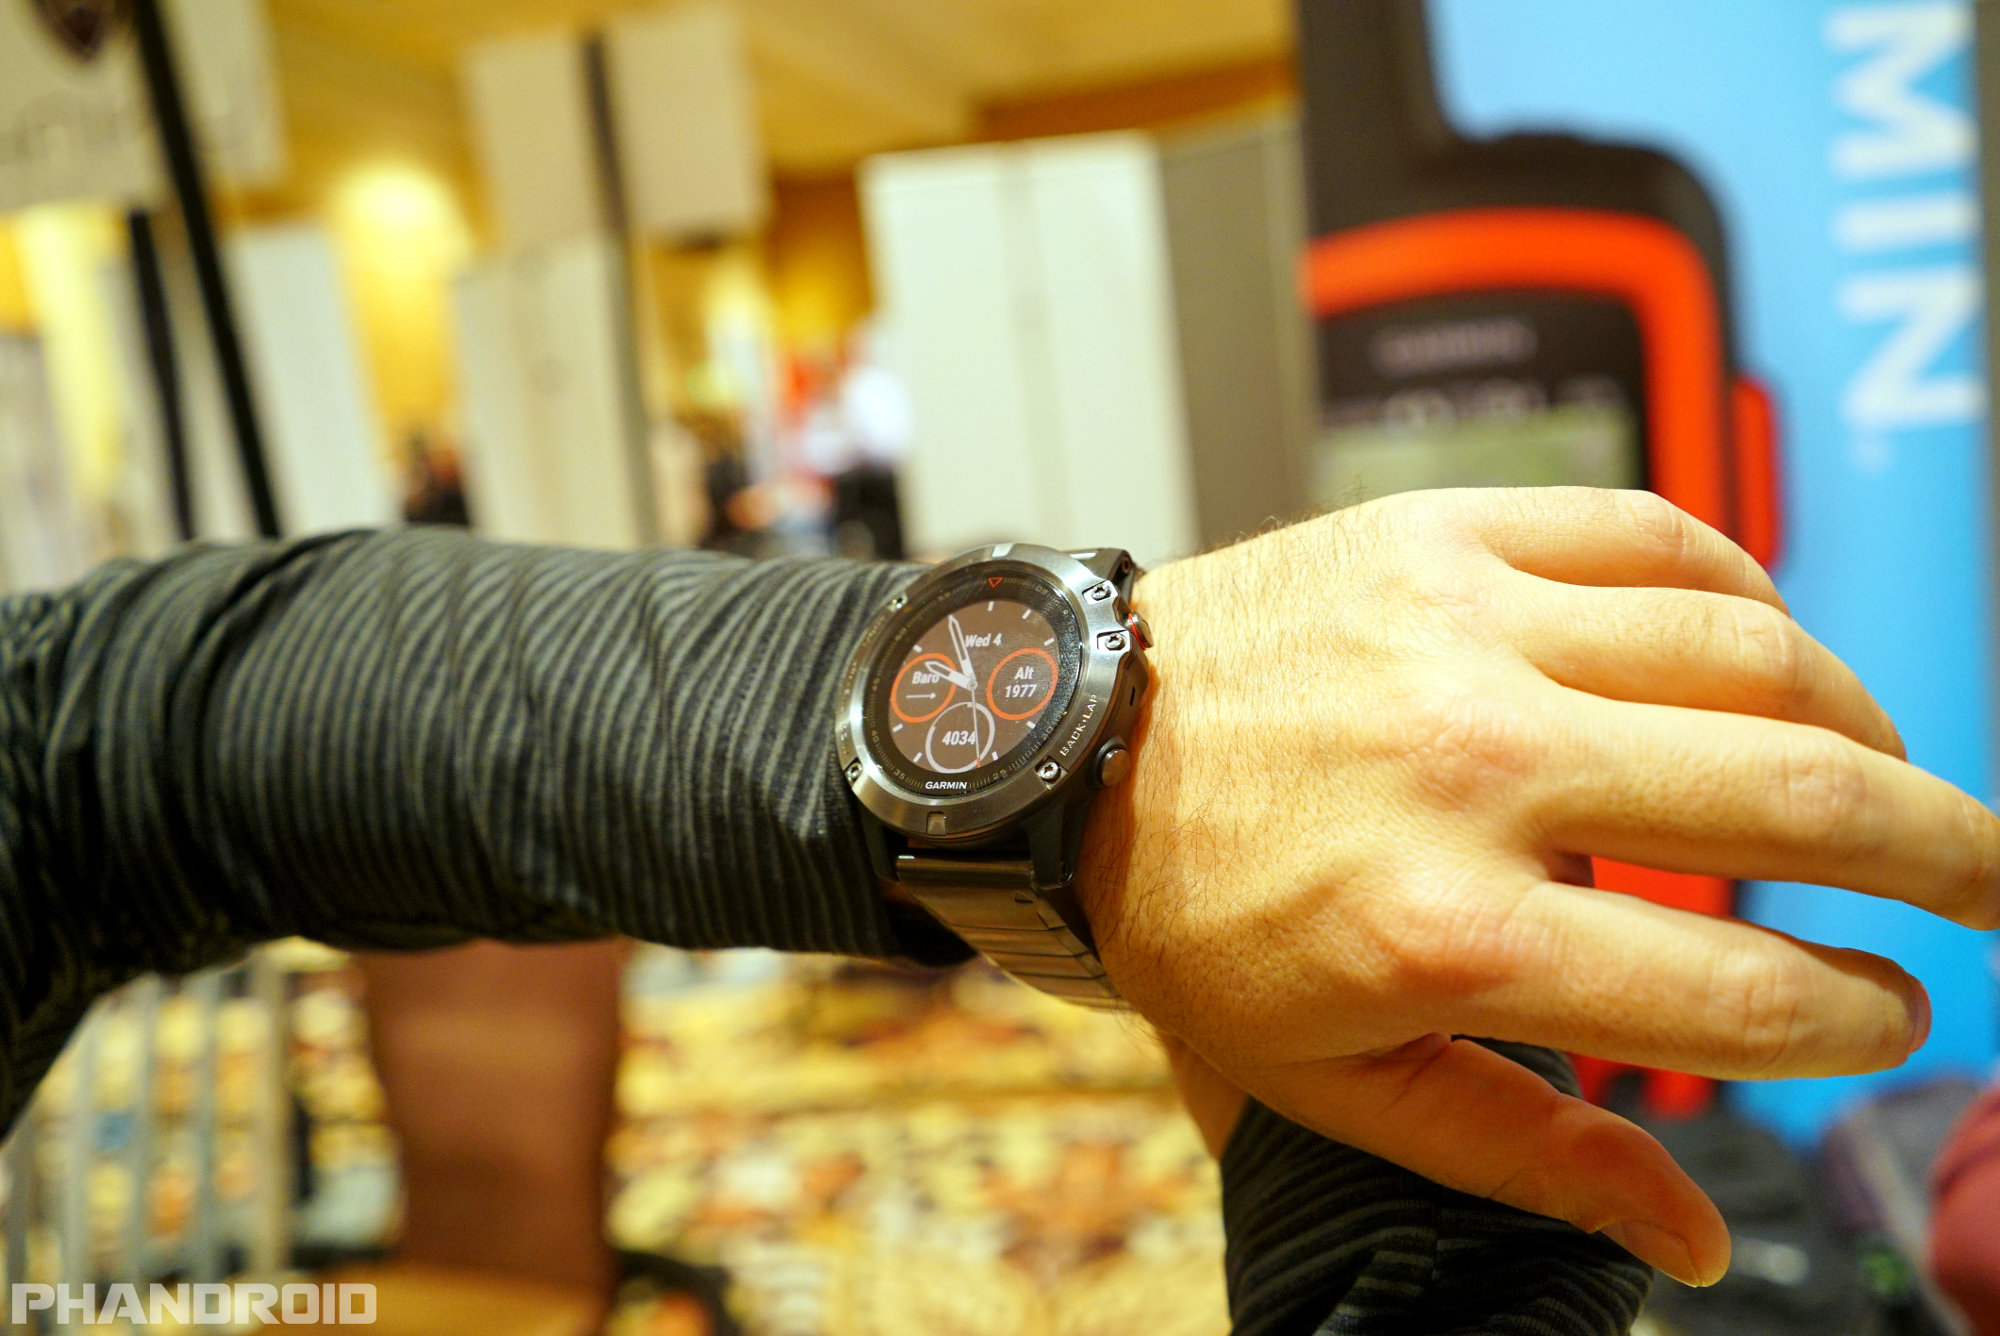 Hands On With 3 New Smartwatches From Garmin